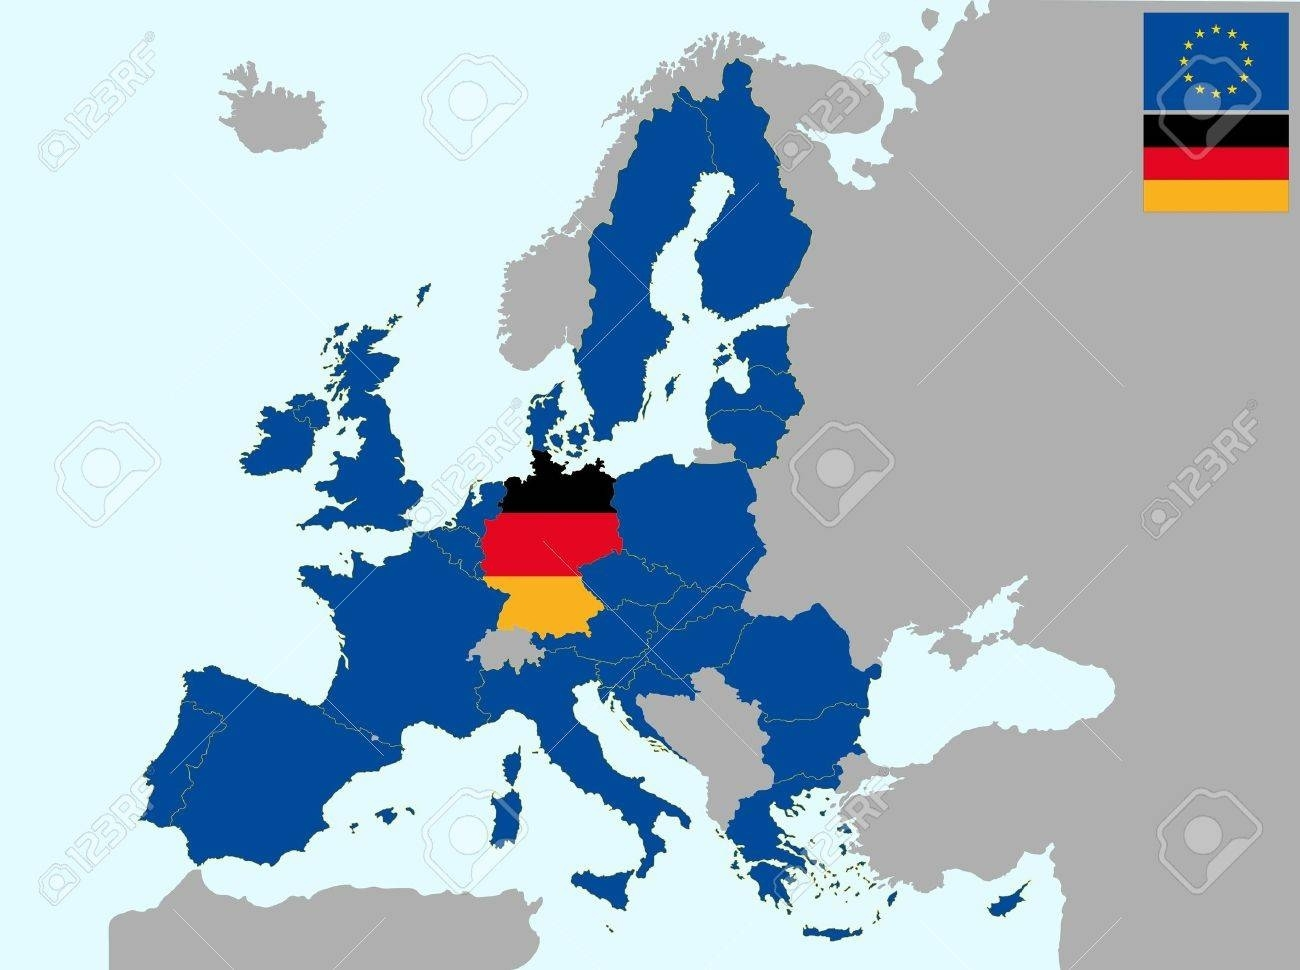 Illustration Of Europe Map With Flag Of Germany, From 1 July.. regarding Germany Location In Europe Map